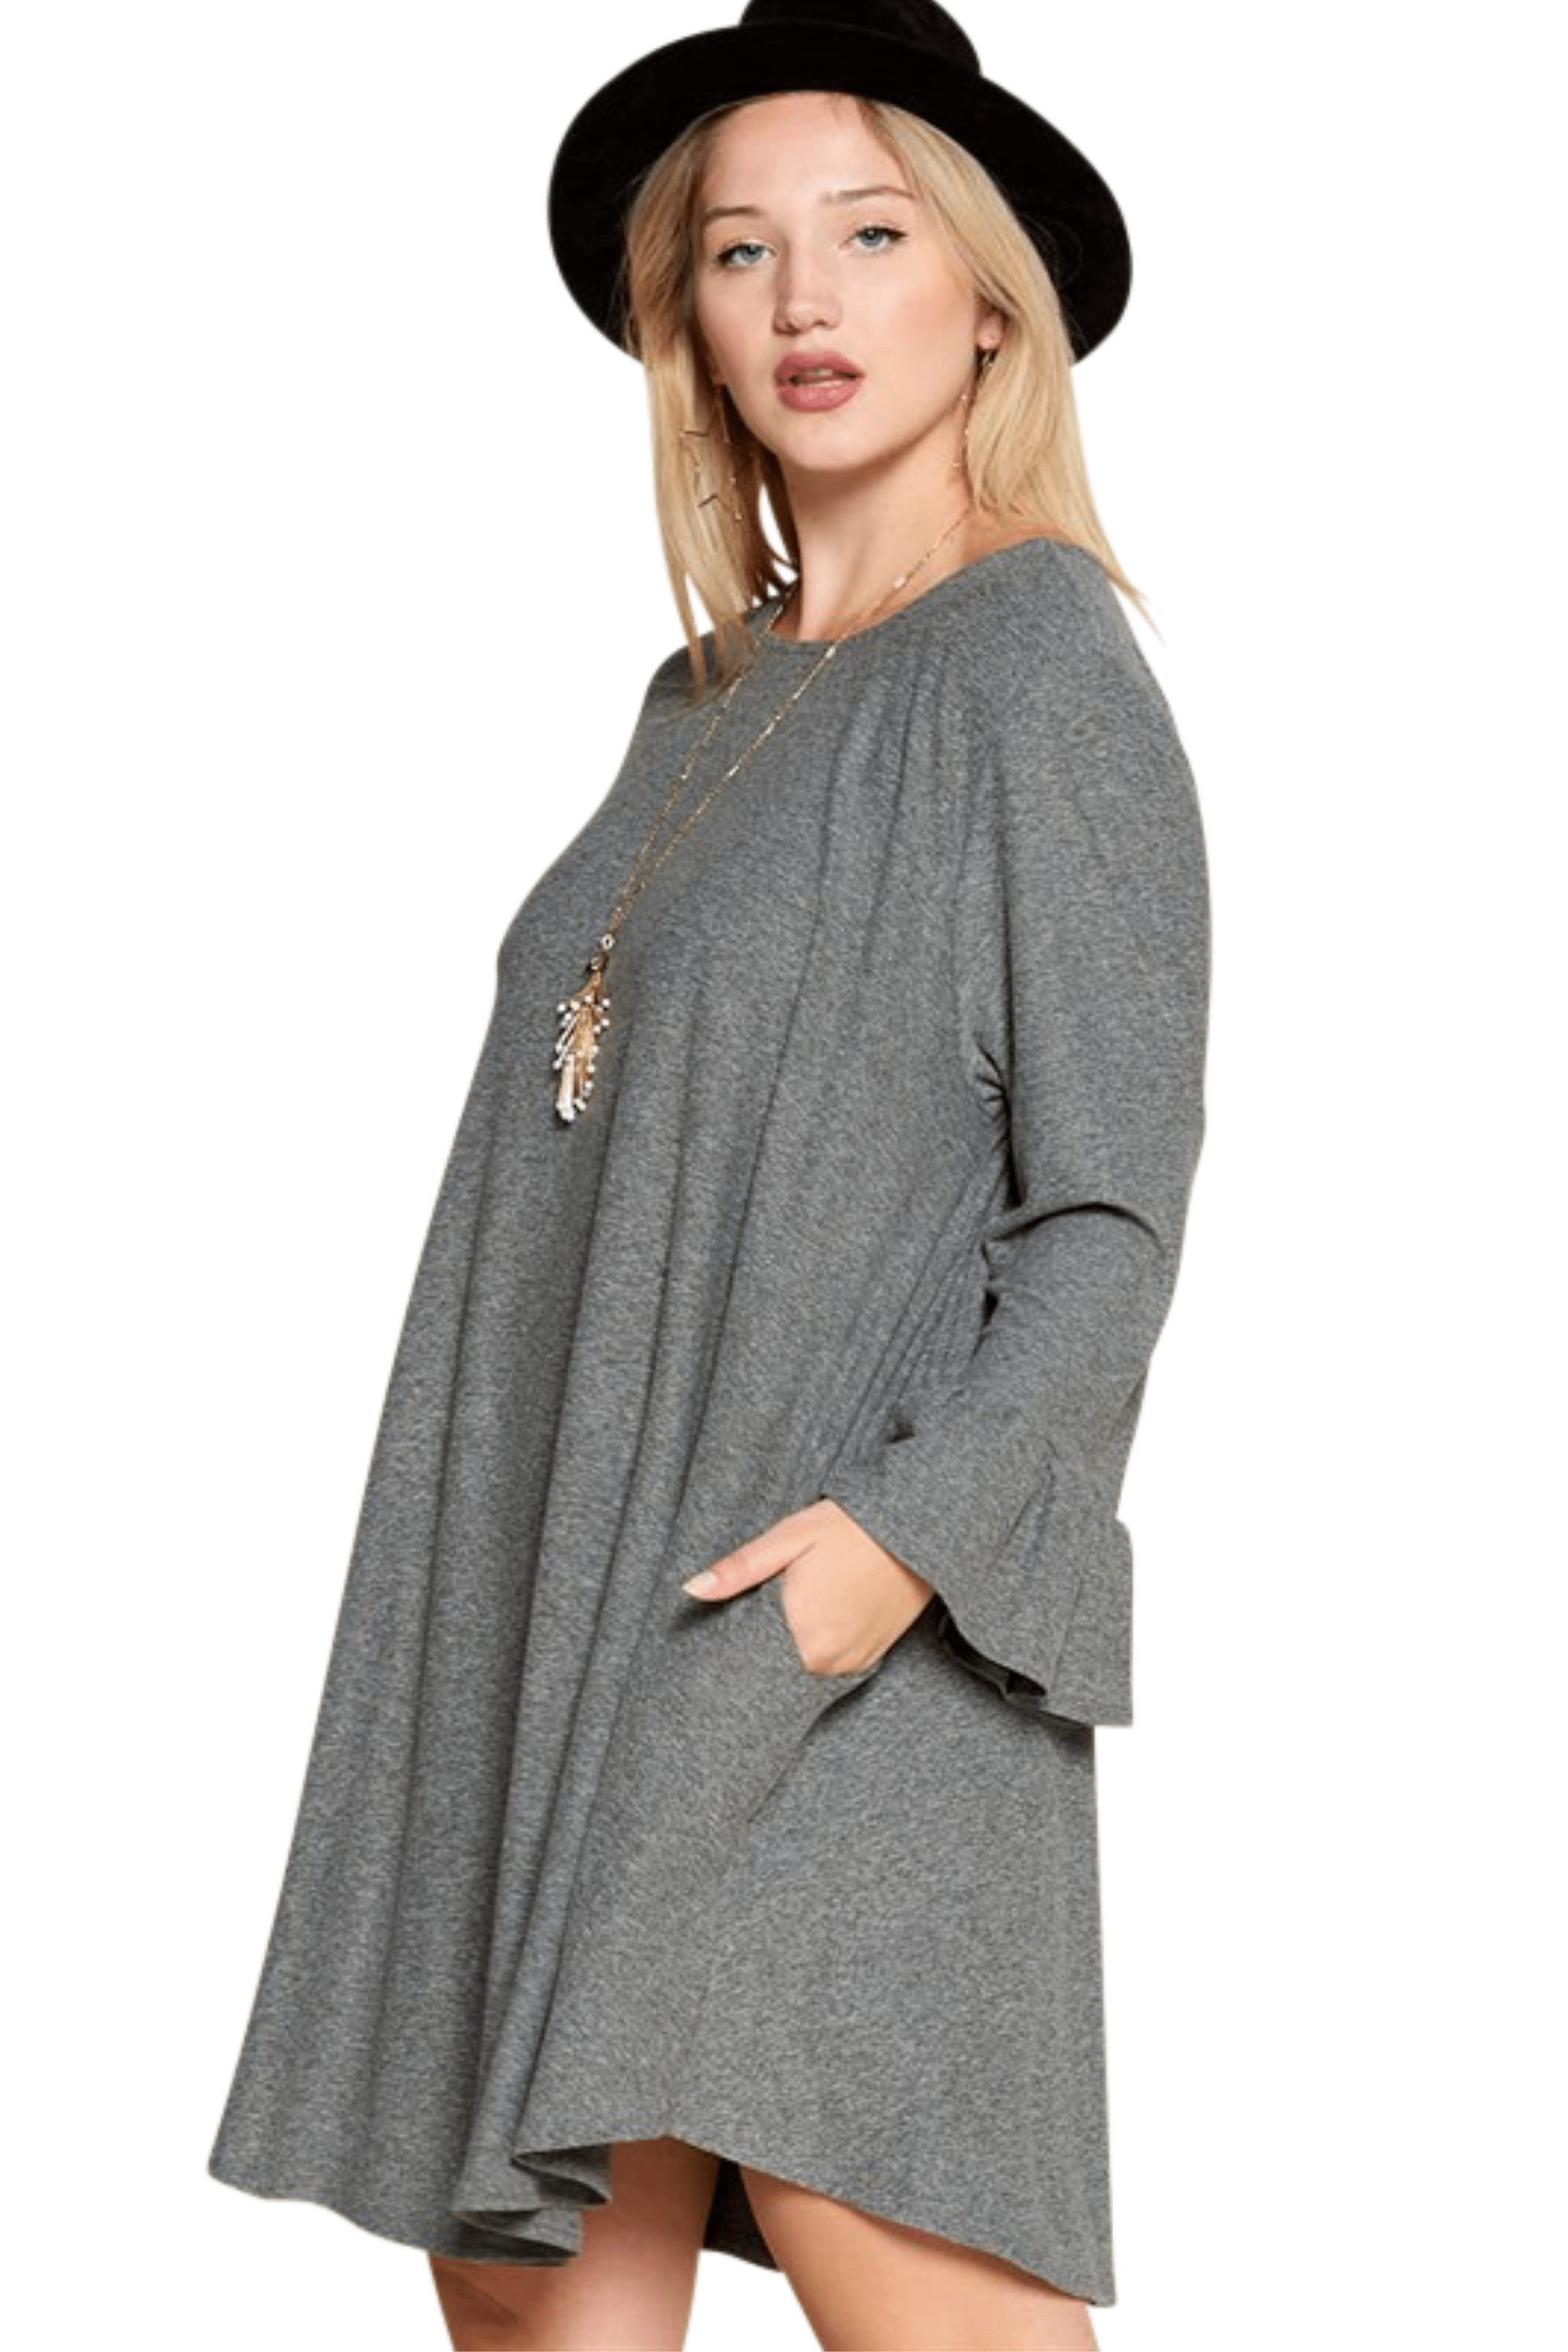 plus size Long Sleeve Dress Stella Dress - Charcoal